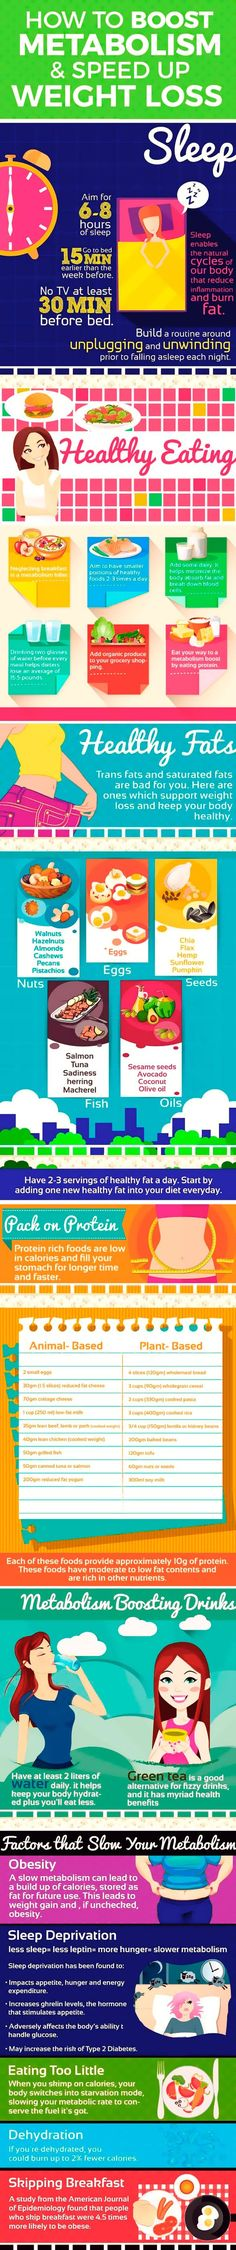 How to boost your metabolism and speed up weight loss.